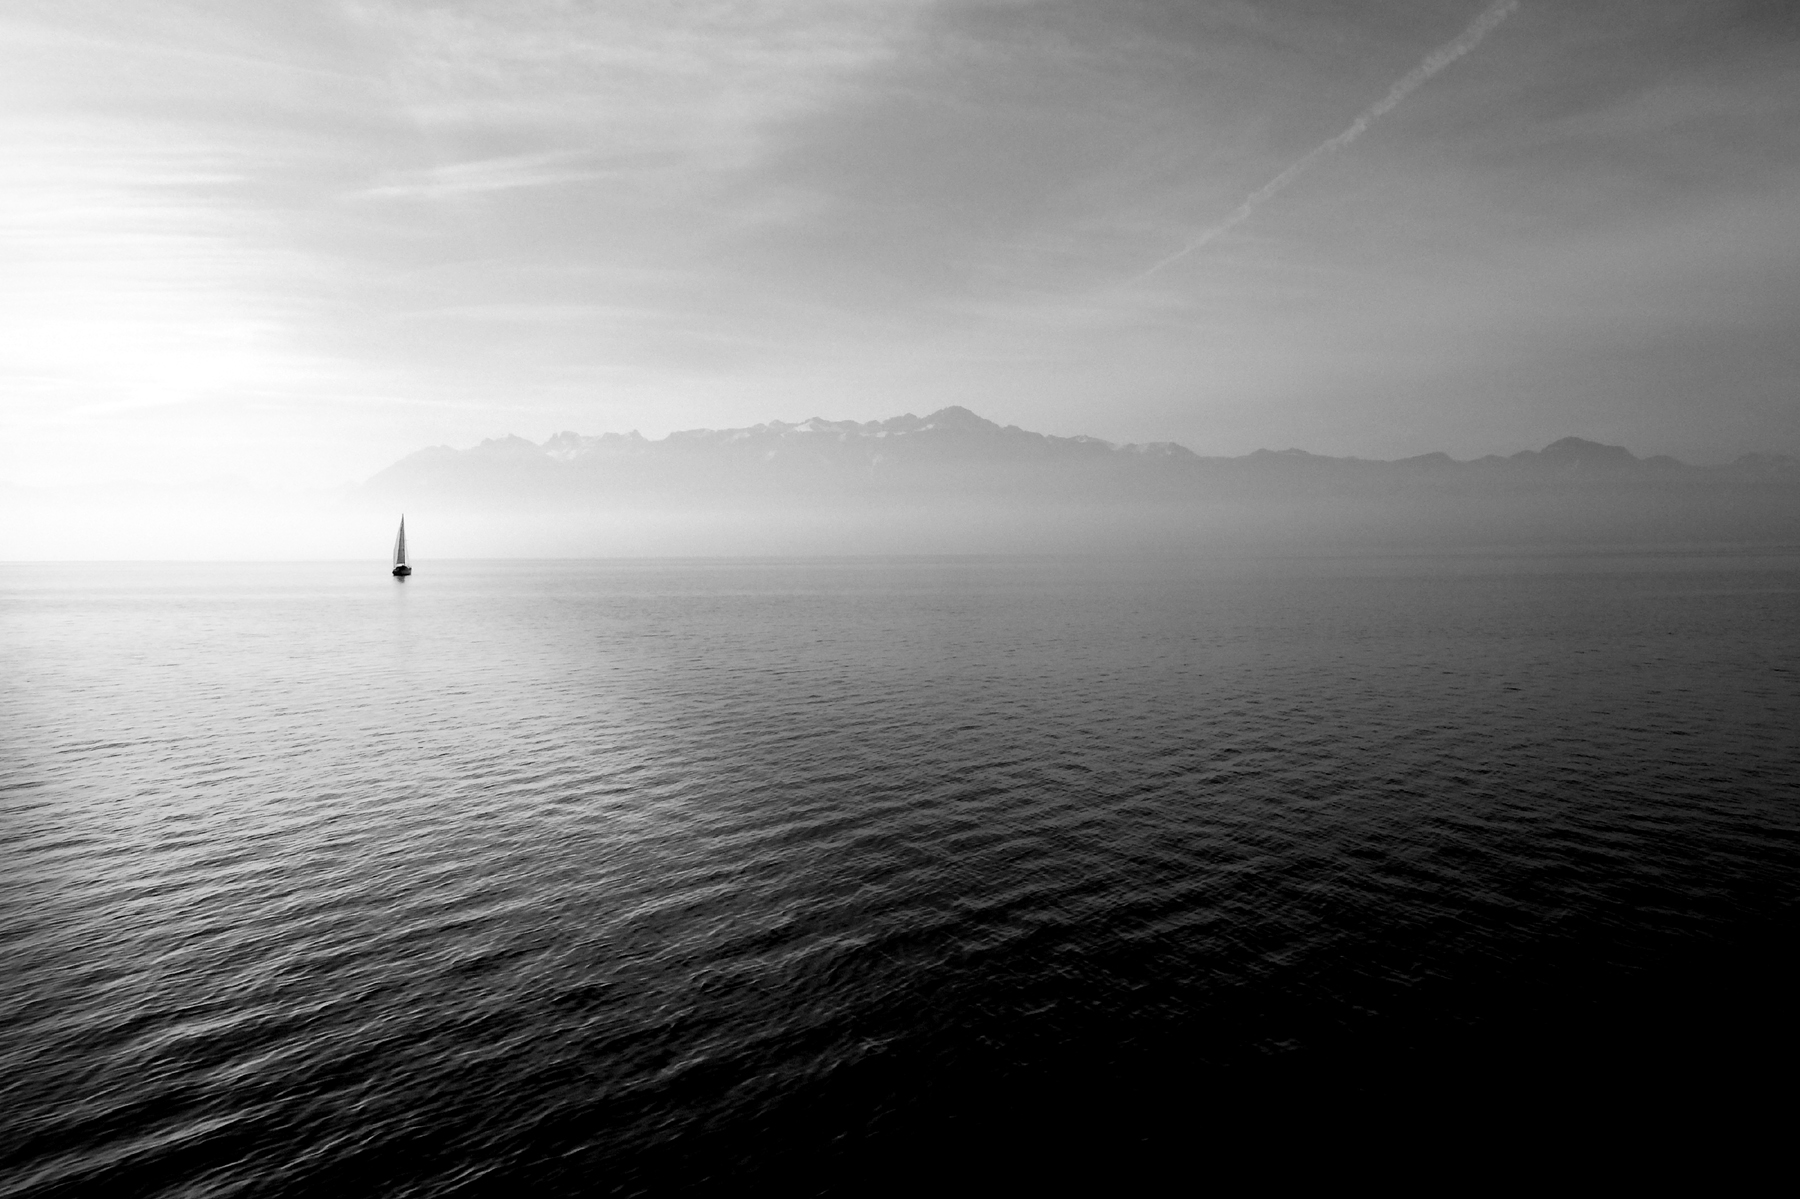 Sailing on the sea with mountains looming 52245